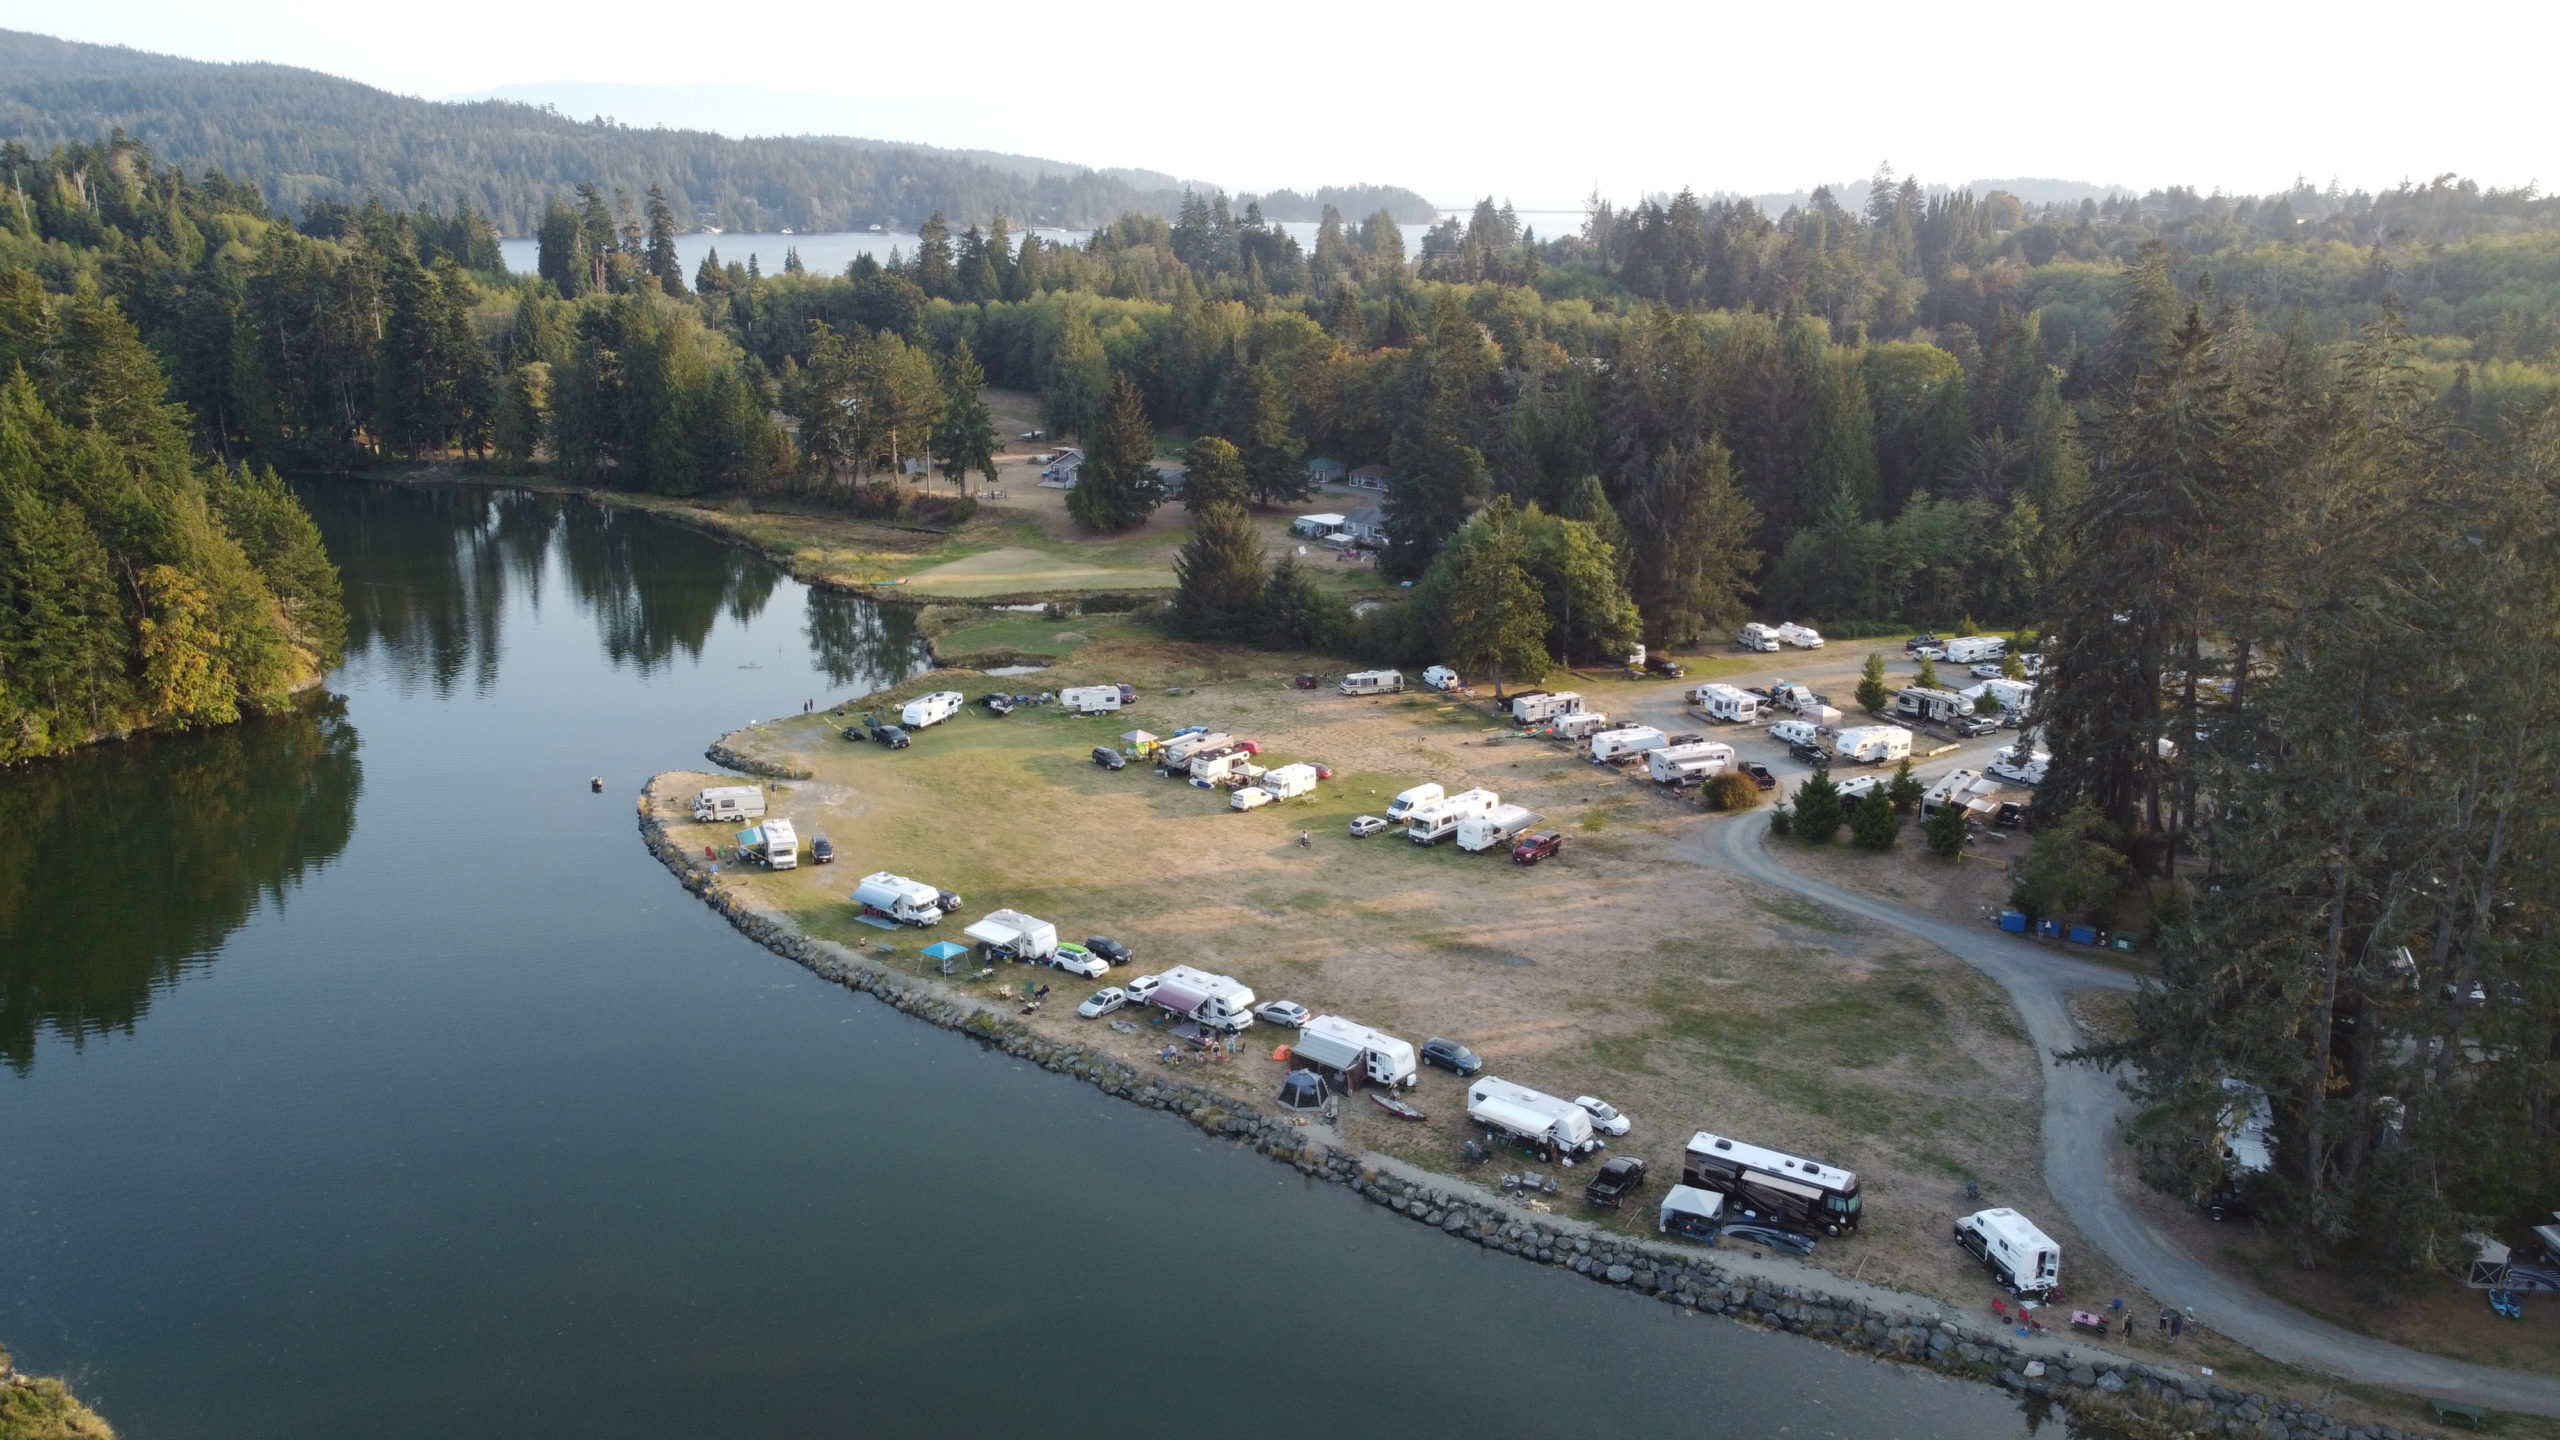 Riverside campsites